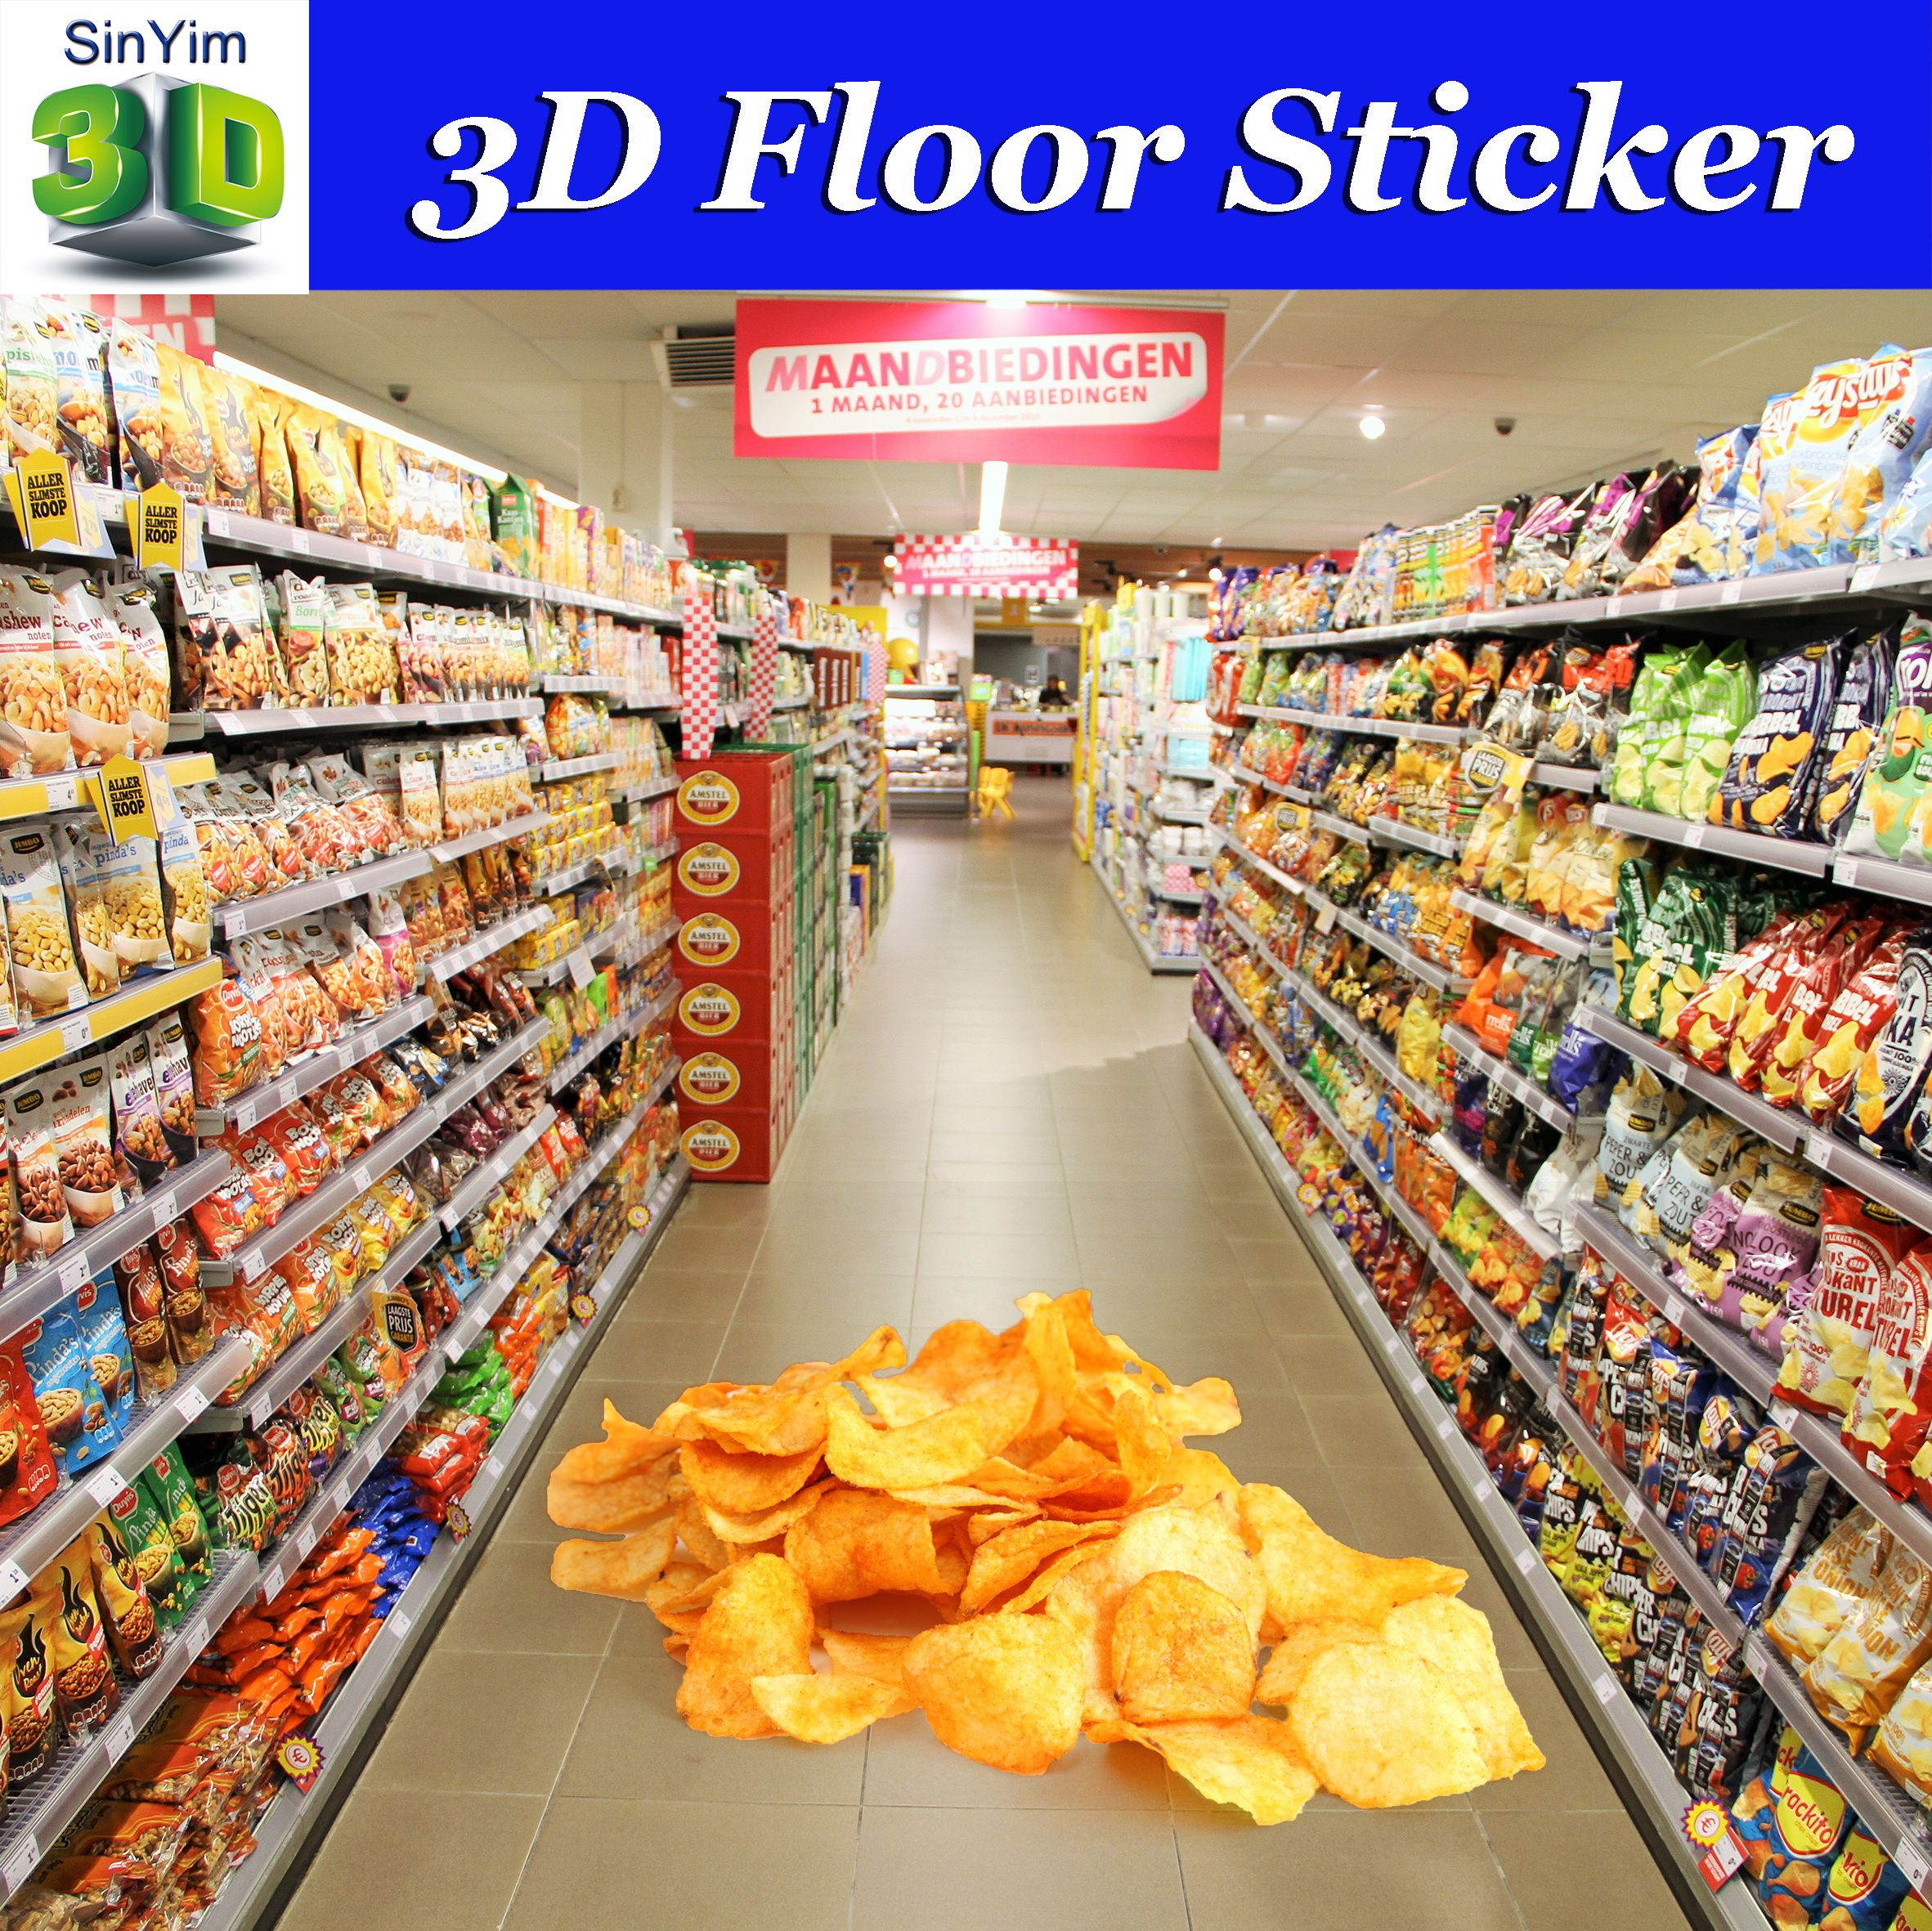 Custom 3d floor stickers 3d floor decals 3d floor graphics for high impact in store advertising potato chips promotion